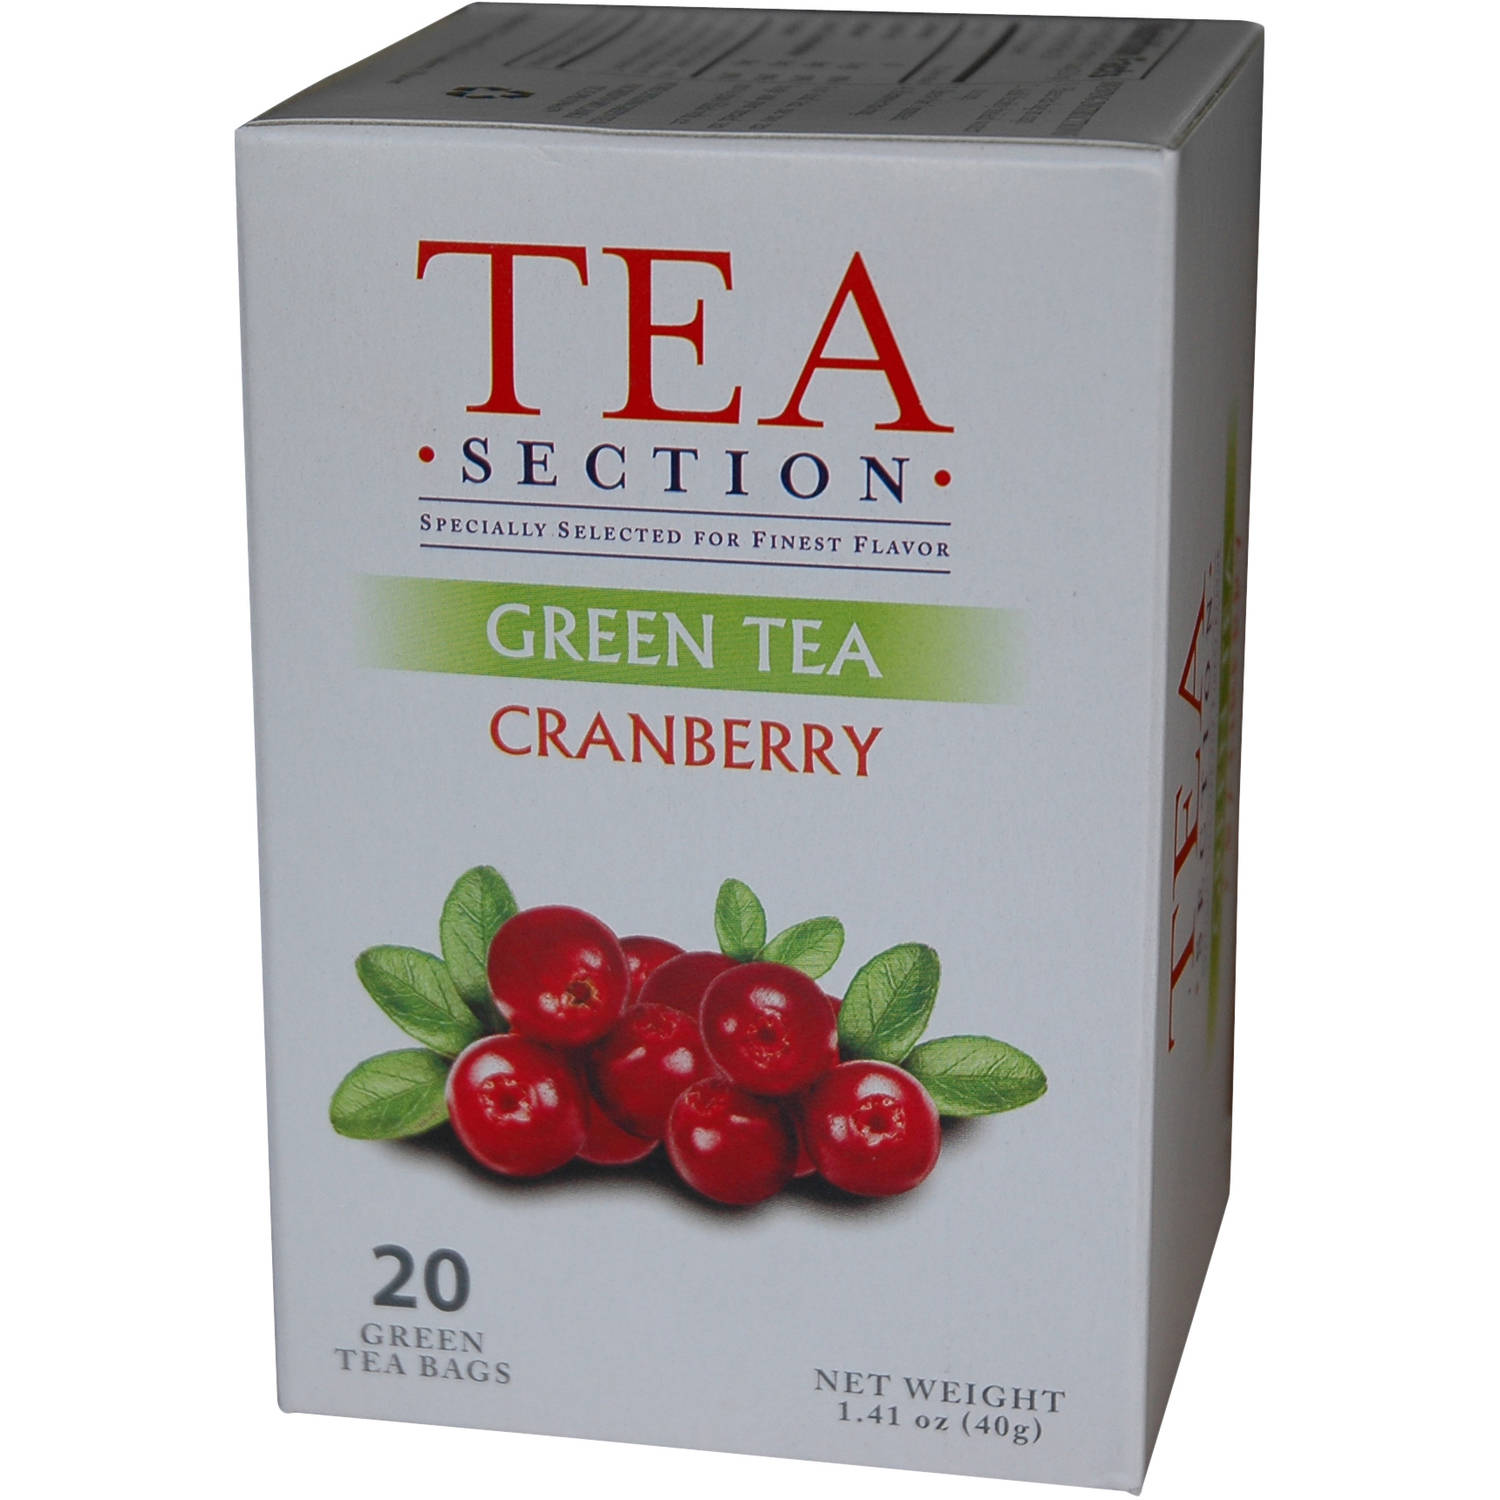 Tea Section Cranberry Green Tea Bags, 20 count, 1.41 oz